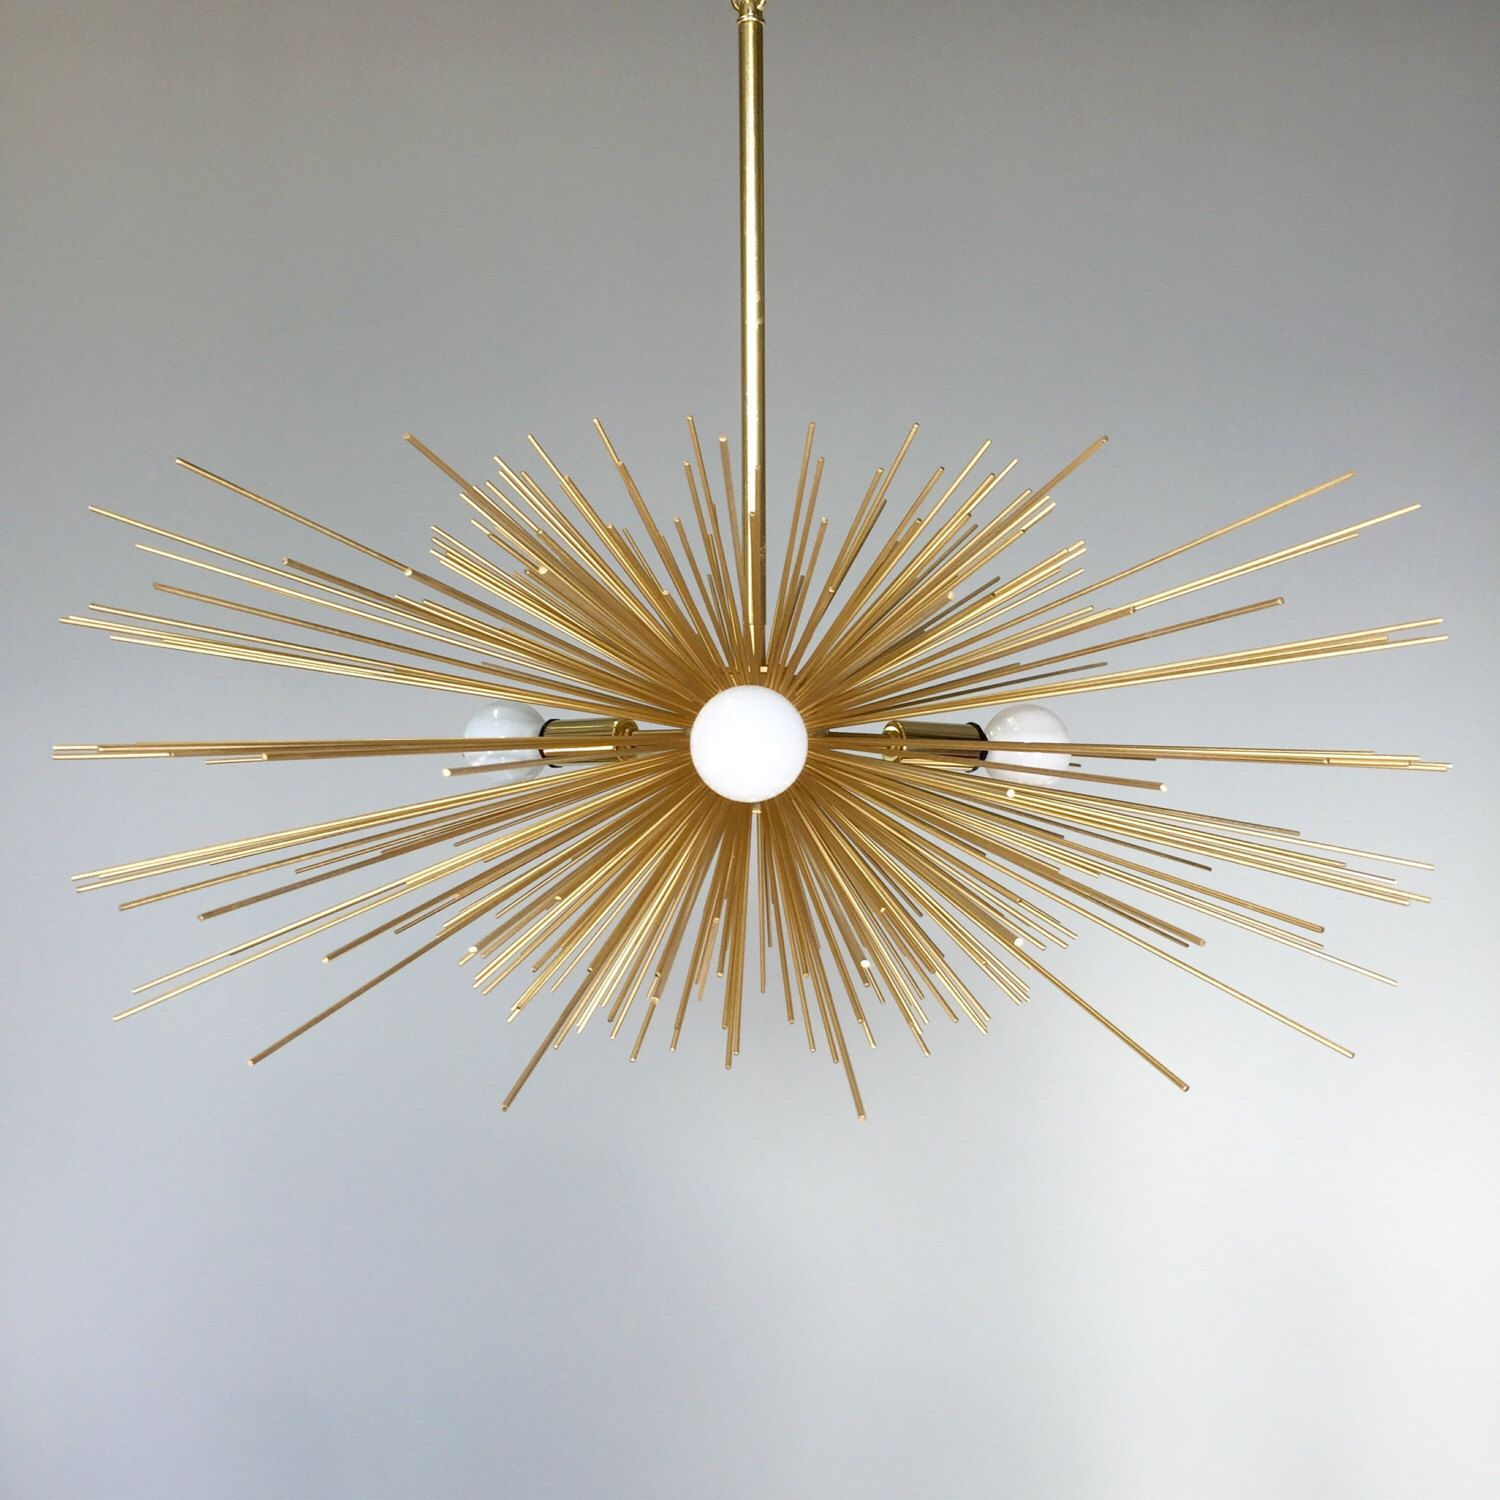 3 Bulb Gold Urchin Chandelier Lighting by DuttonBrown on Etsy